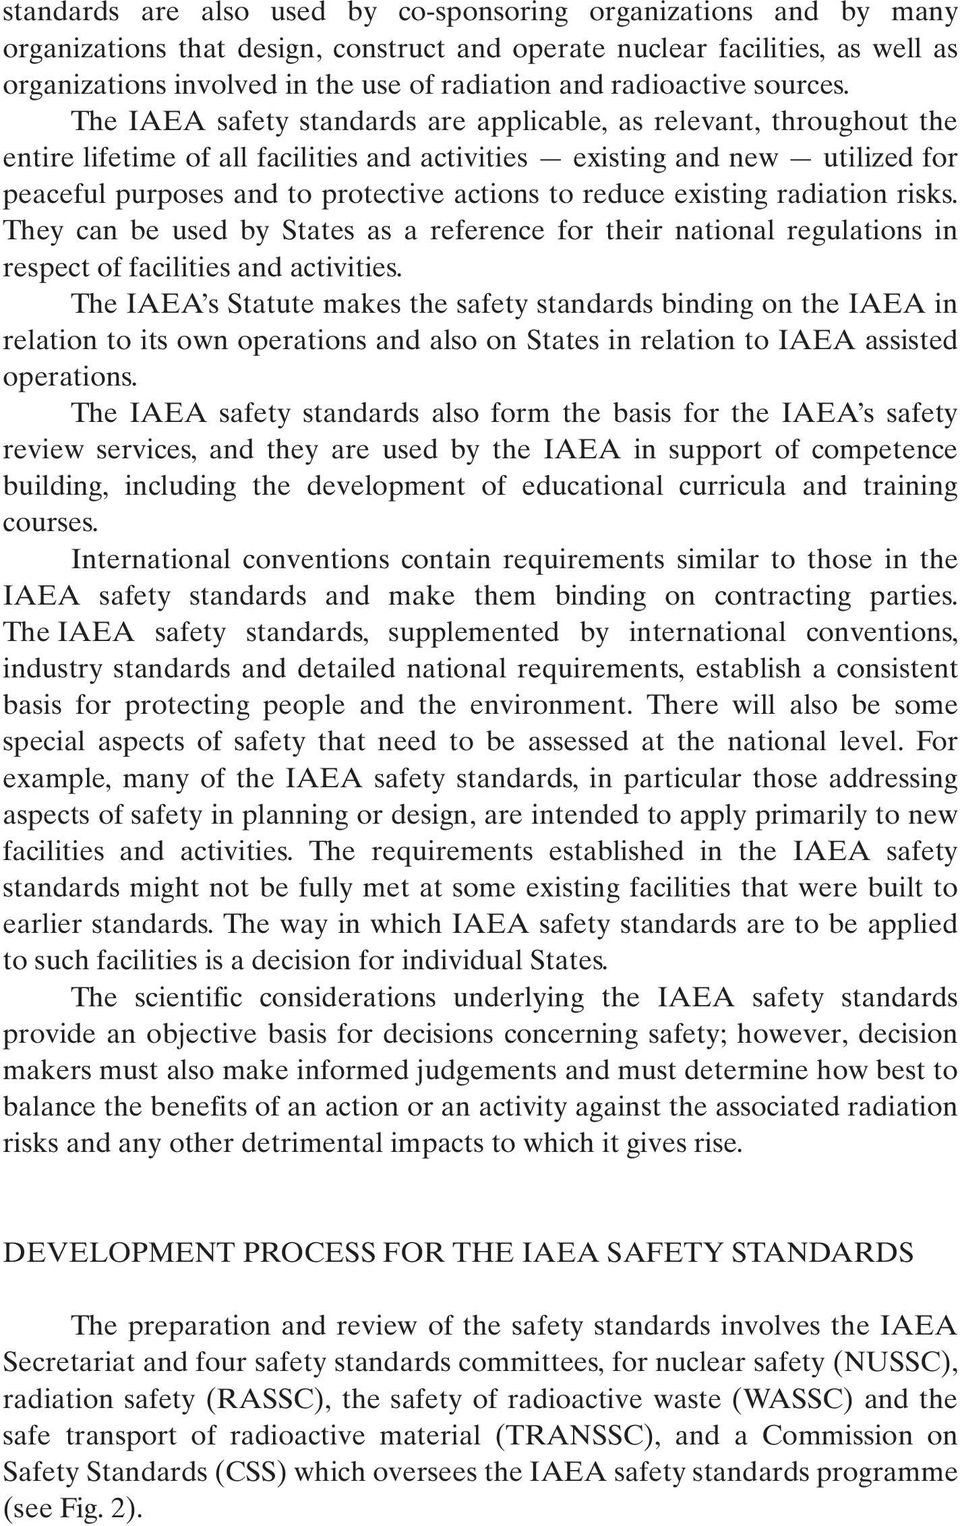 The IAEA safety standards are applicable, as relevant, throughout the entire lifetime of all facilities and activities existing and new utilized for peaceful purposes and to protective actions to